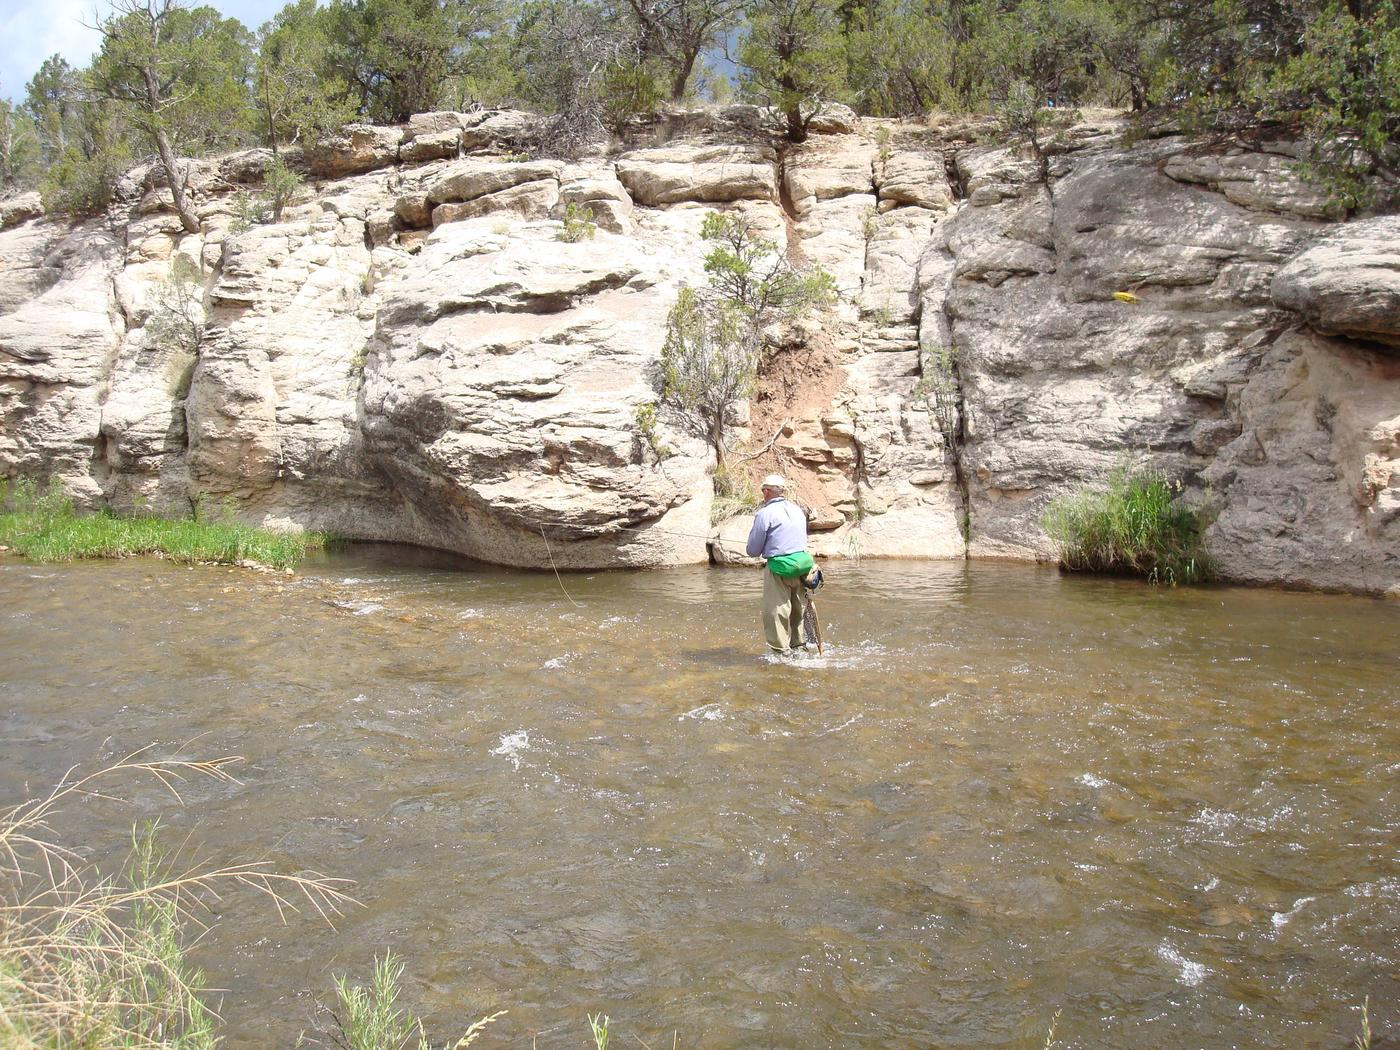 A fisherman works under cliffs on Beat 3 of the Pecos River.